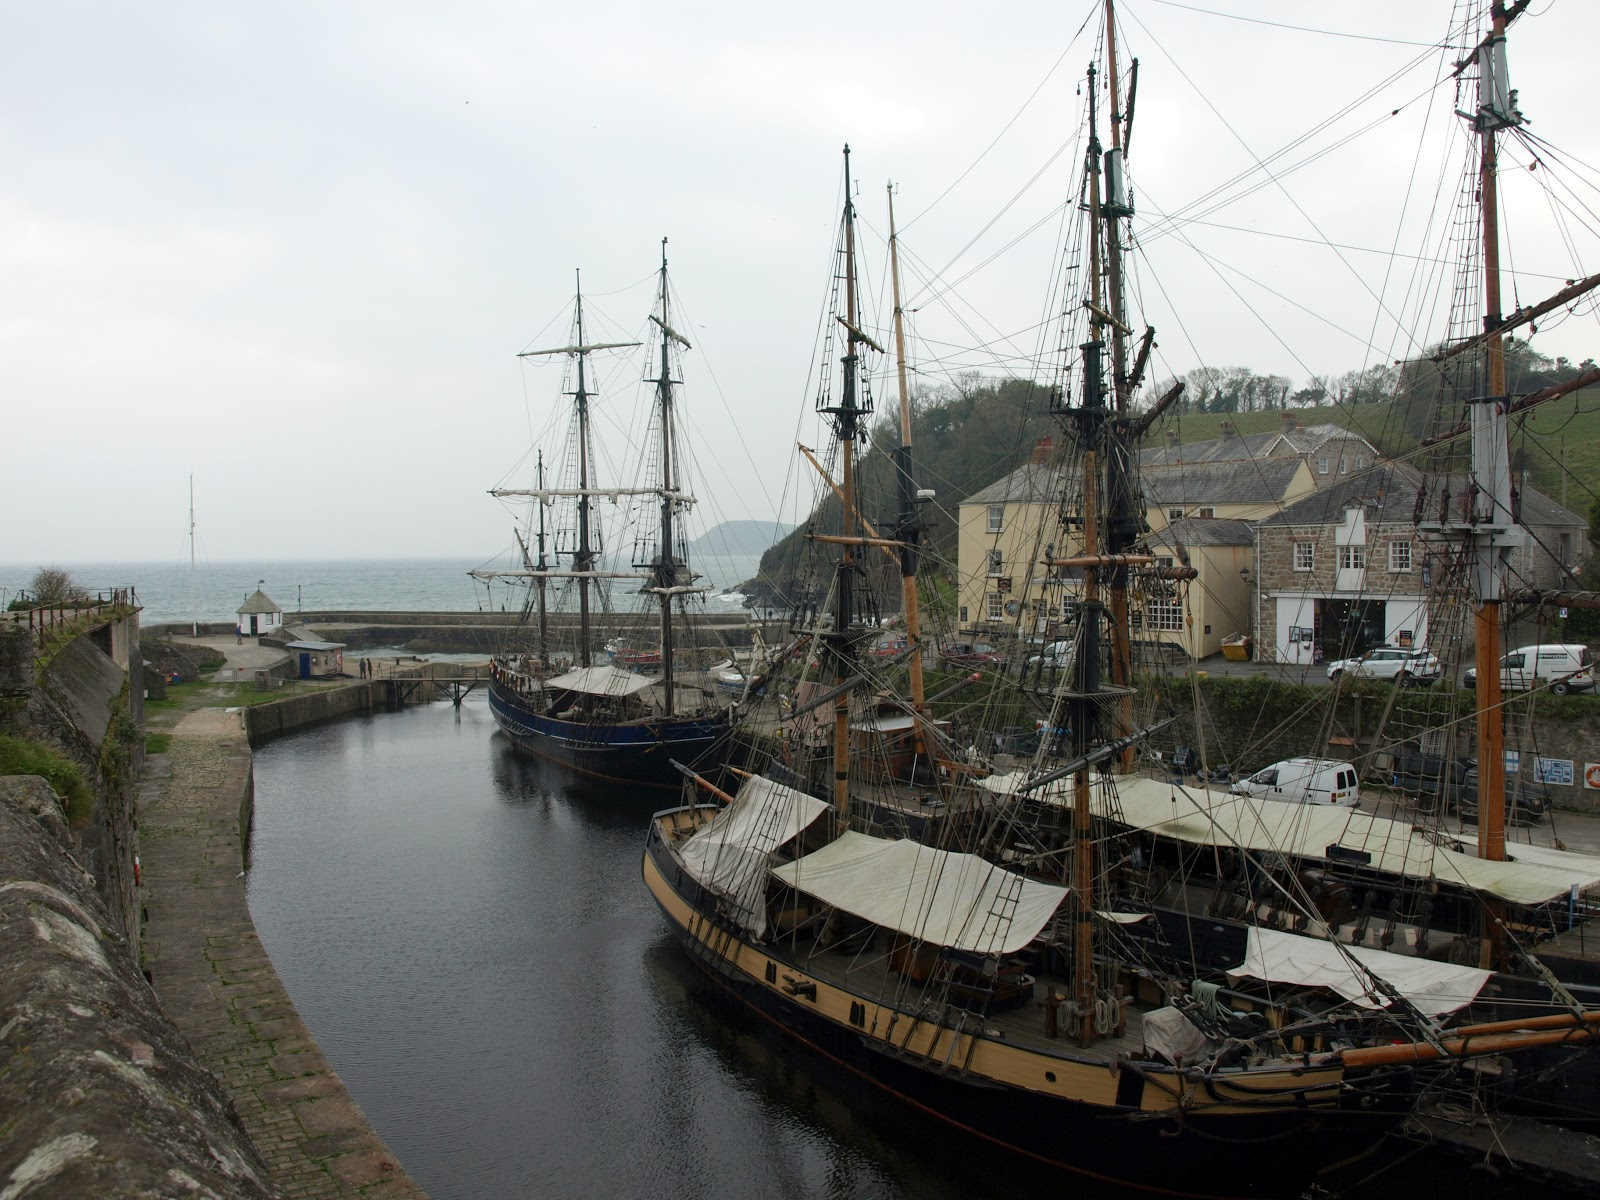 Charlestown gets its name from the person who conceived it ...